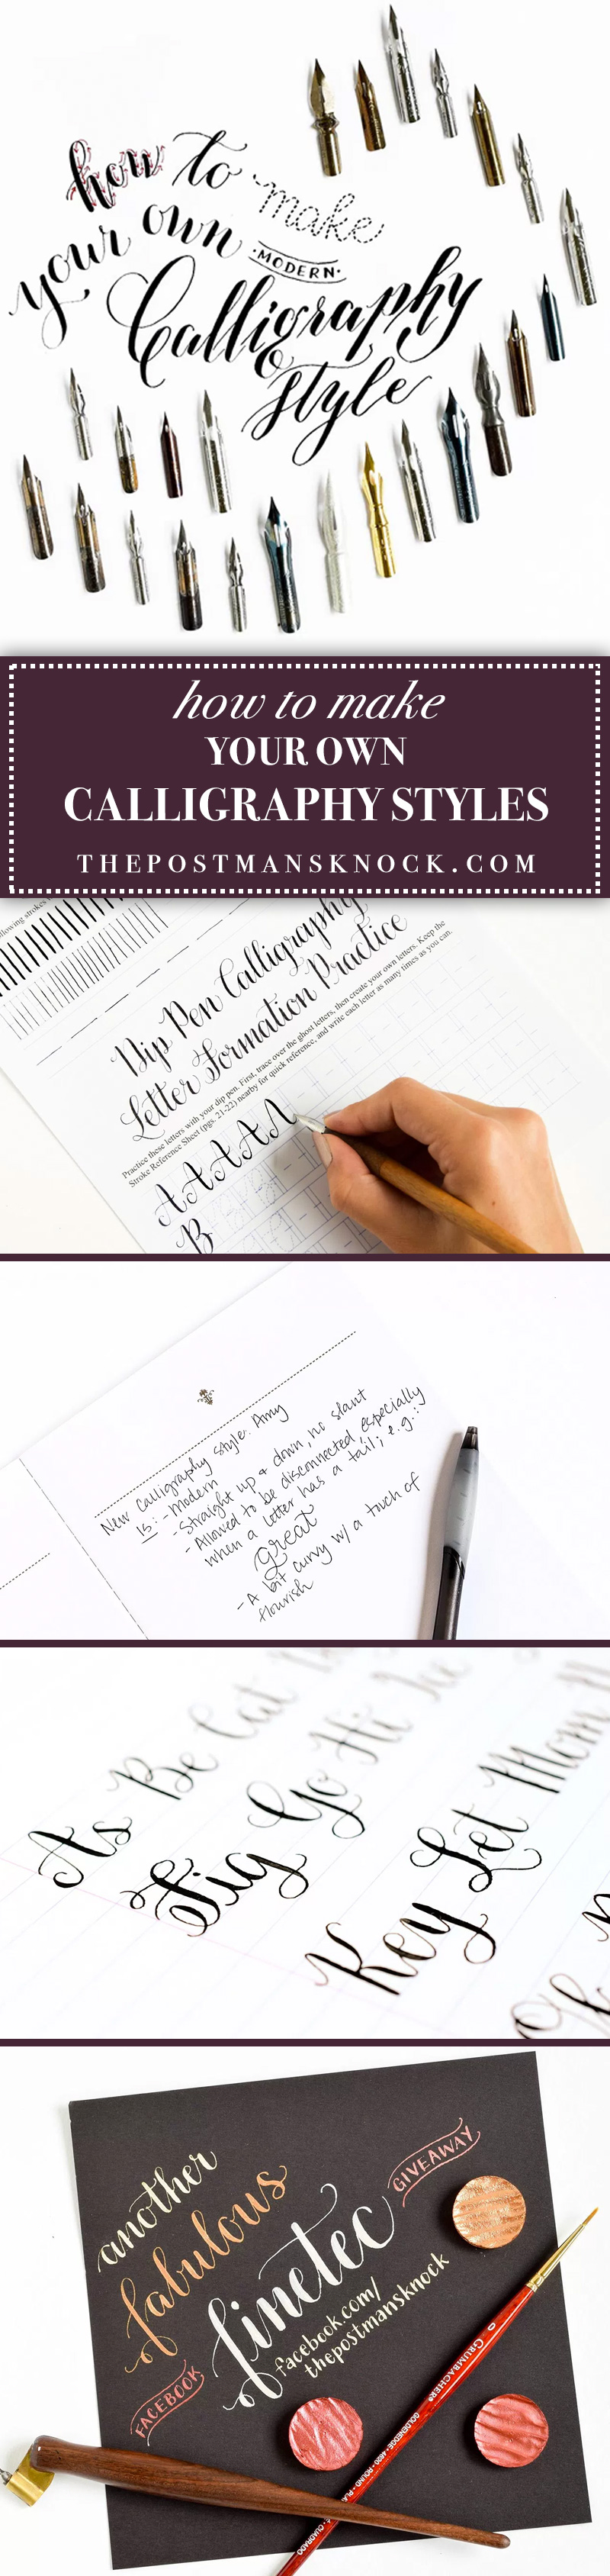 How to Make Your Own Calligraphy Styles | The Postman's Knock